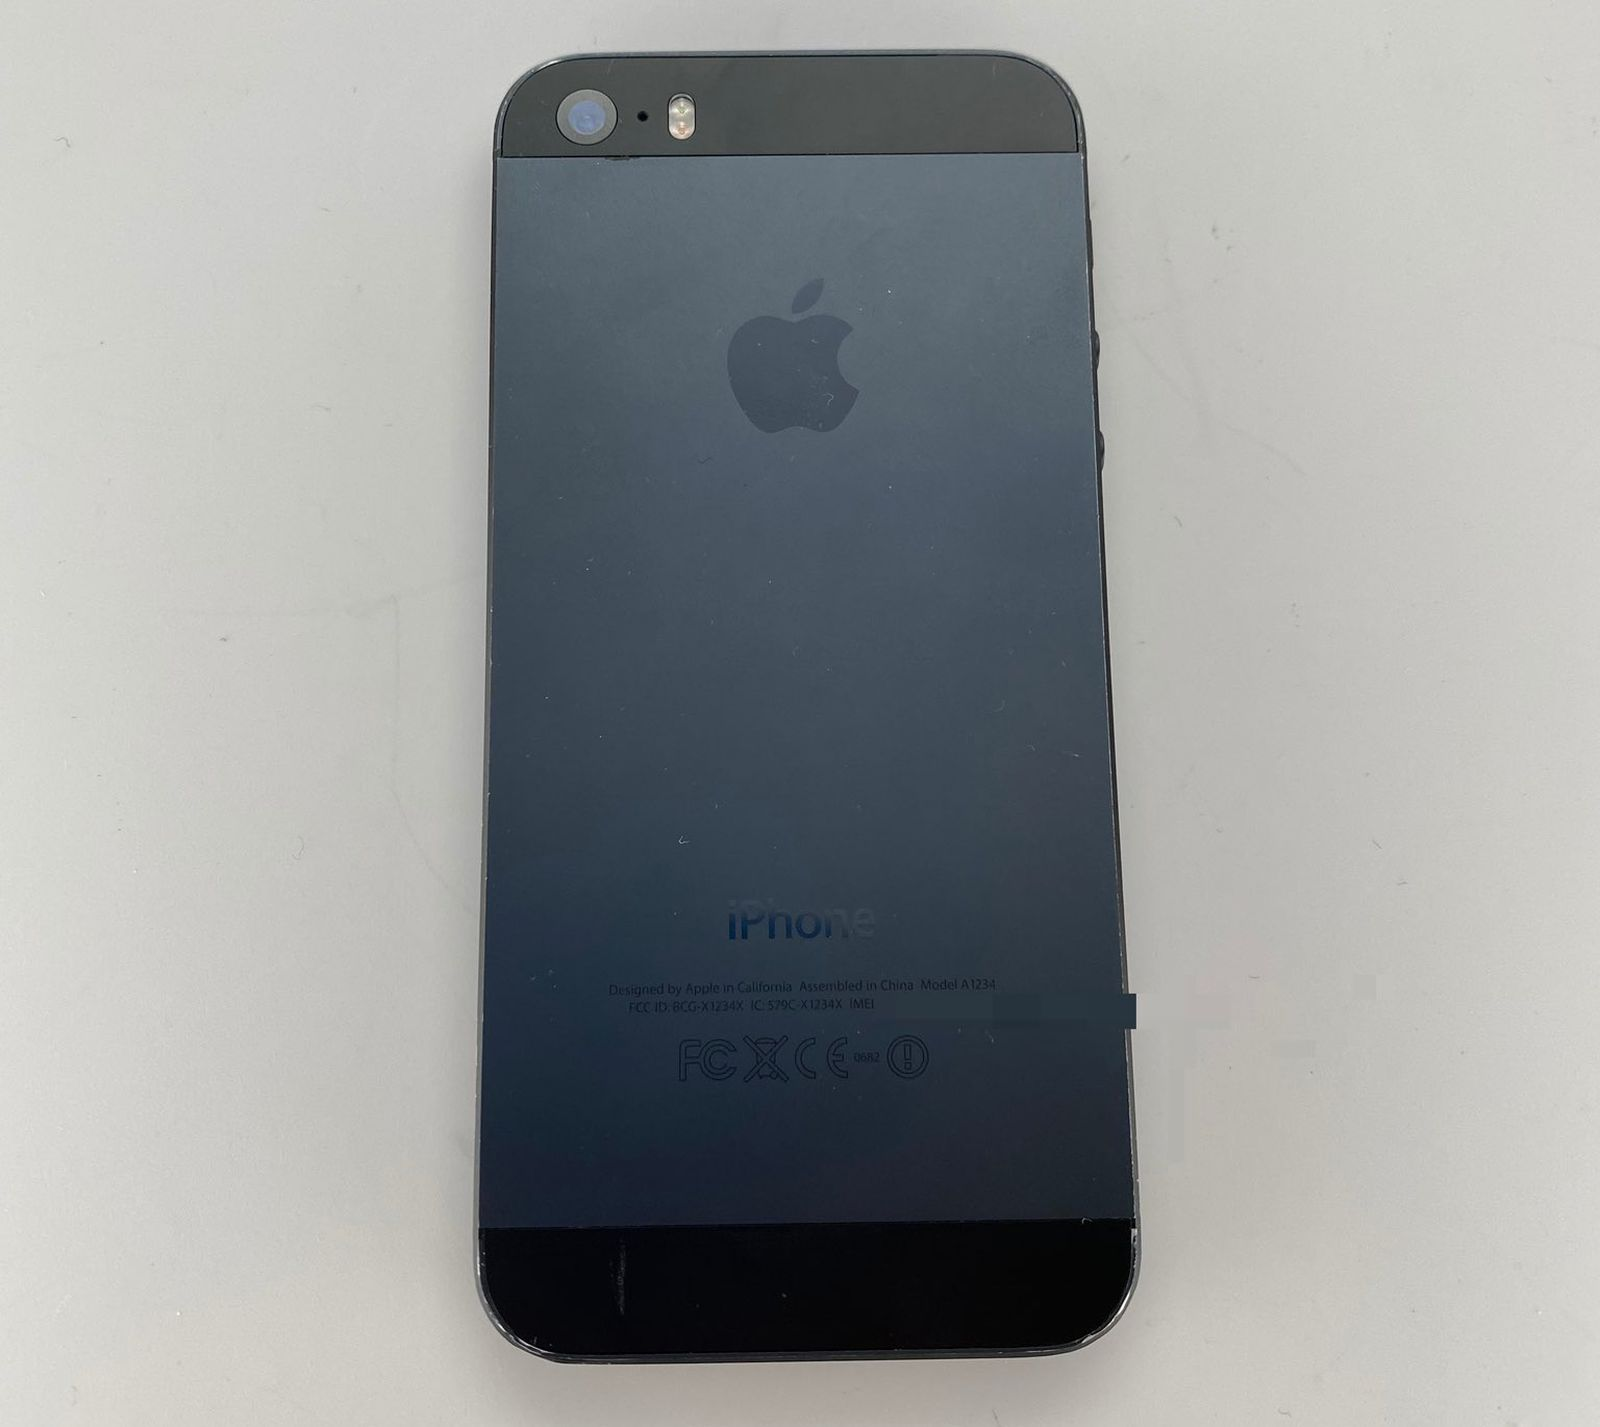 IPhone 5s not released black and slate photos are shared online